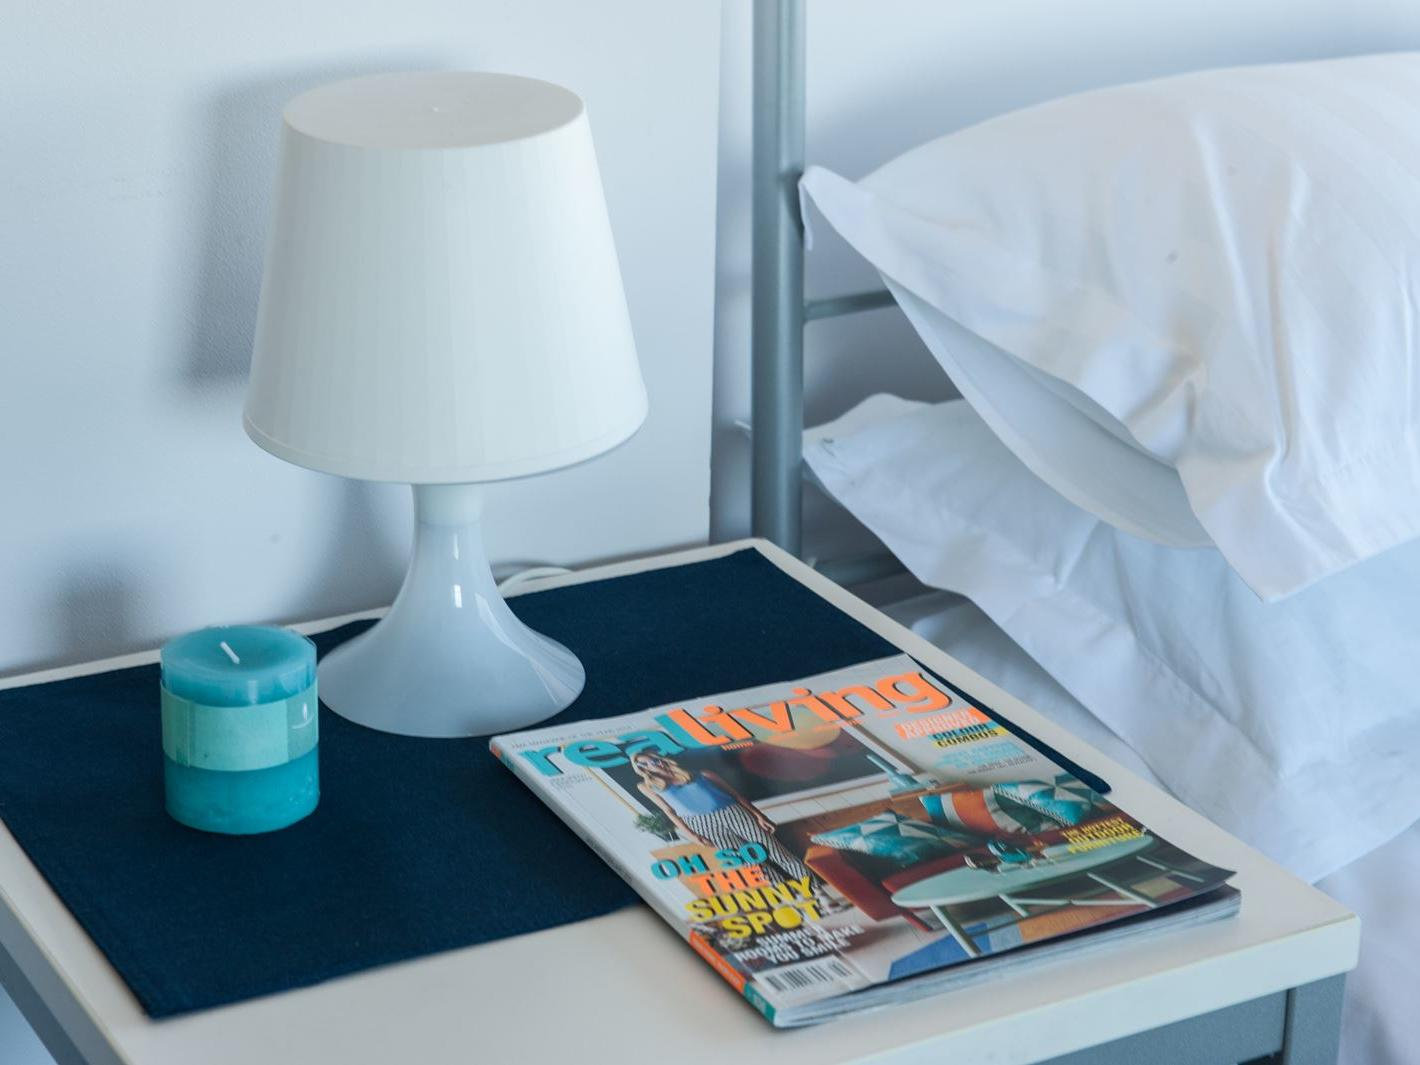 Typical bedside table - purchase hotel quality linen via our online shop, Your Shop